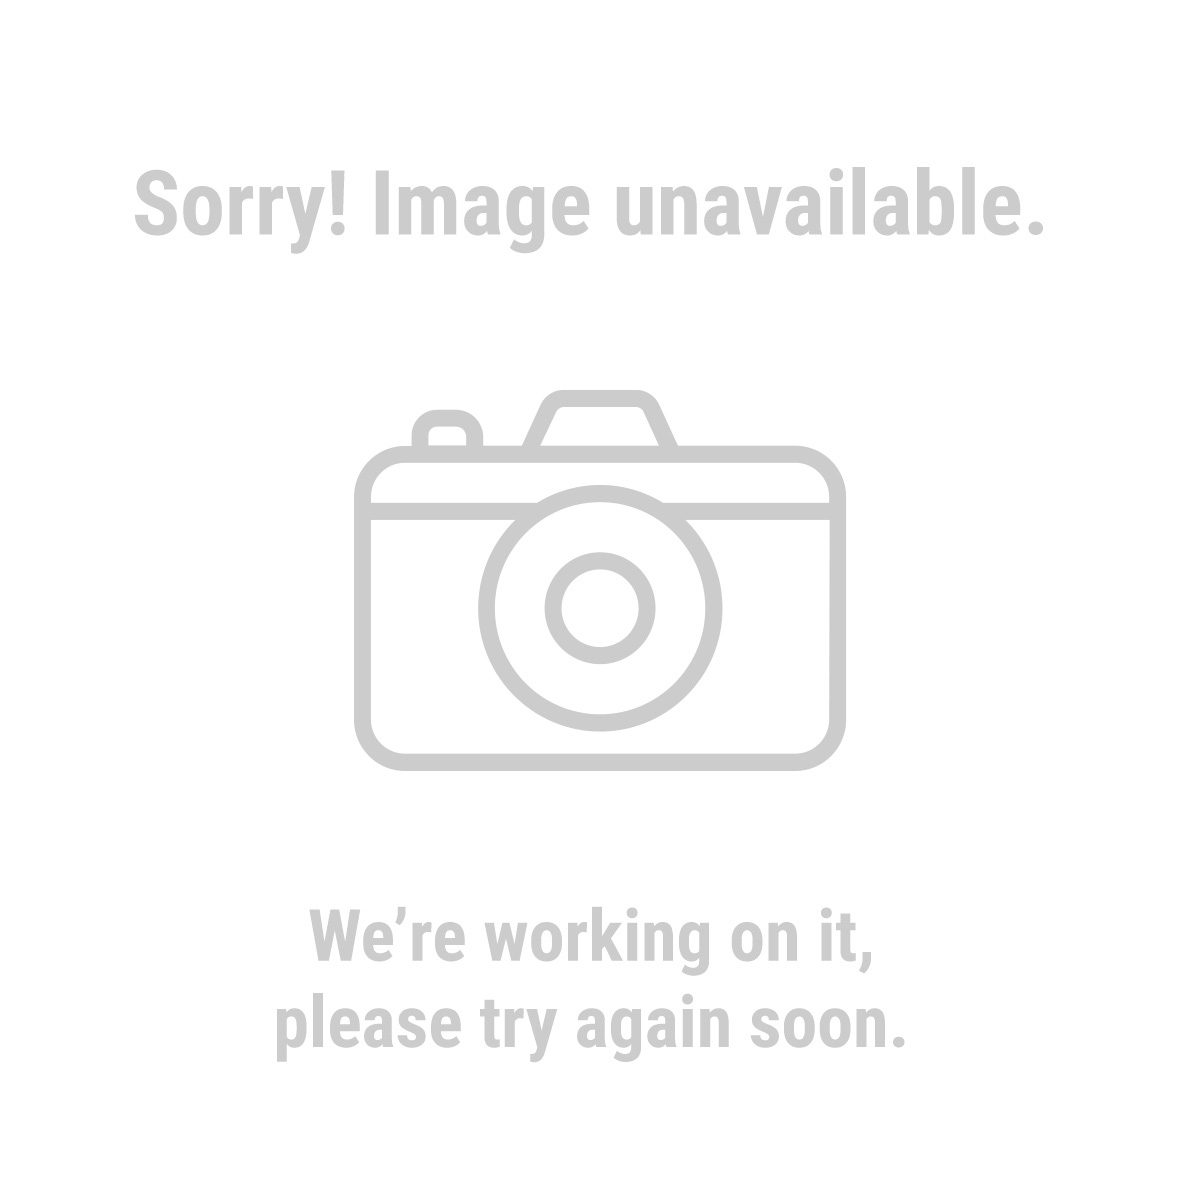 "HFT 69138 7 Ft. 11"" x 9 Ft. 10-3/4"" Reversible Silver and Blue Tarp"